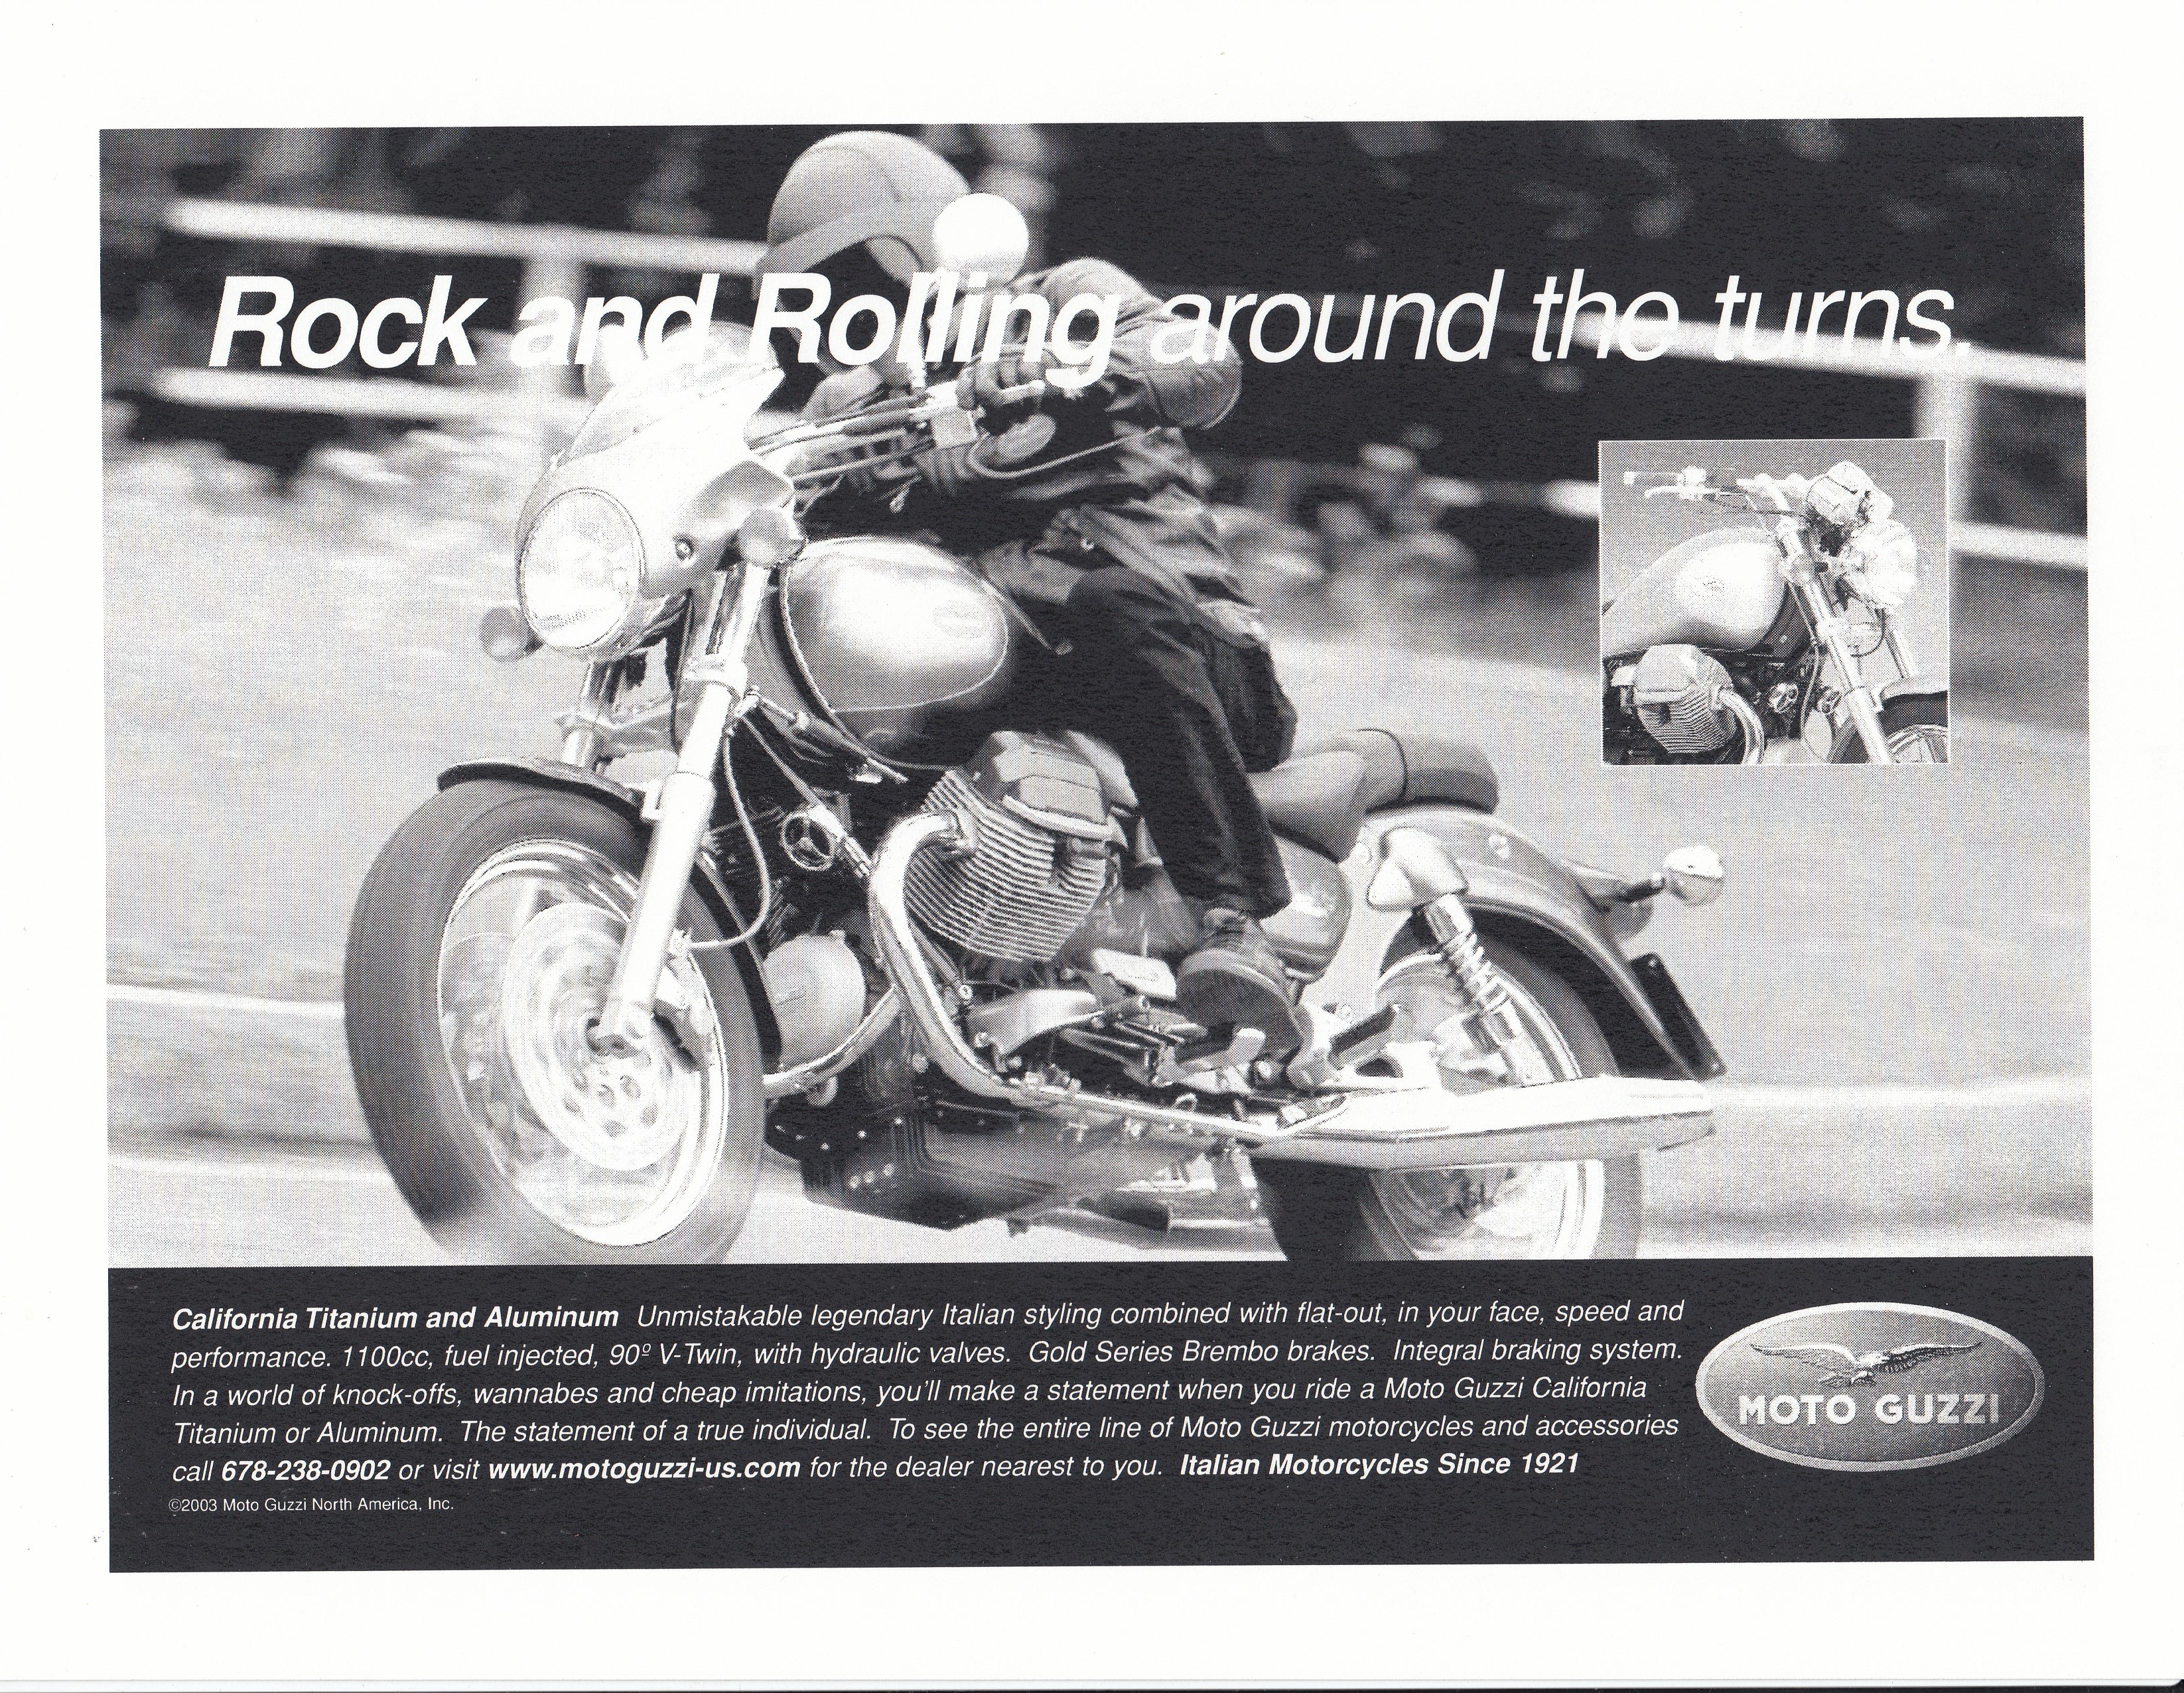 Press release - Rock and rolling around the turns (2003)